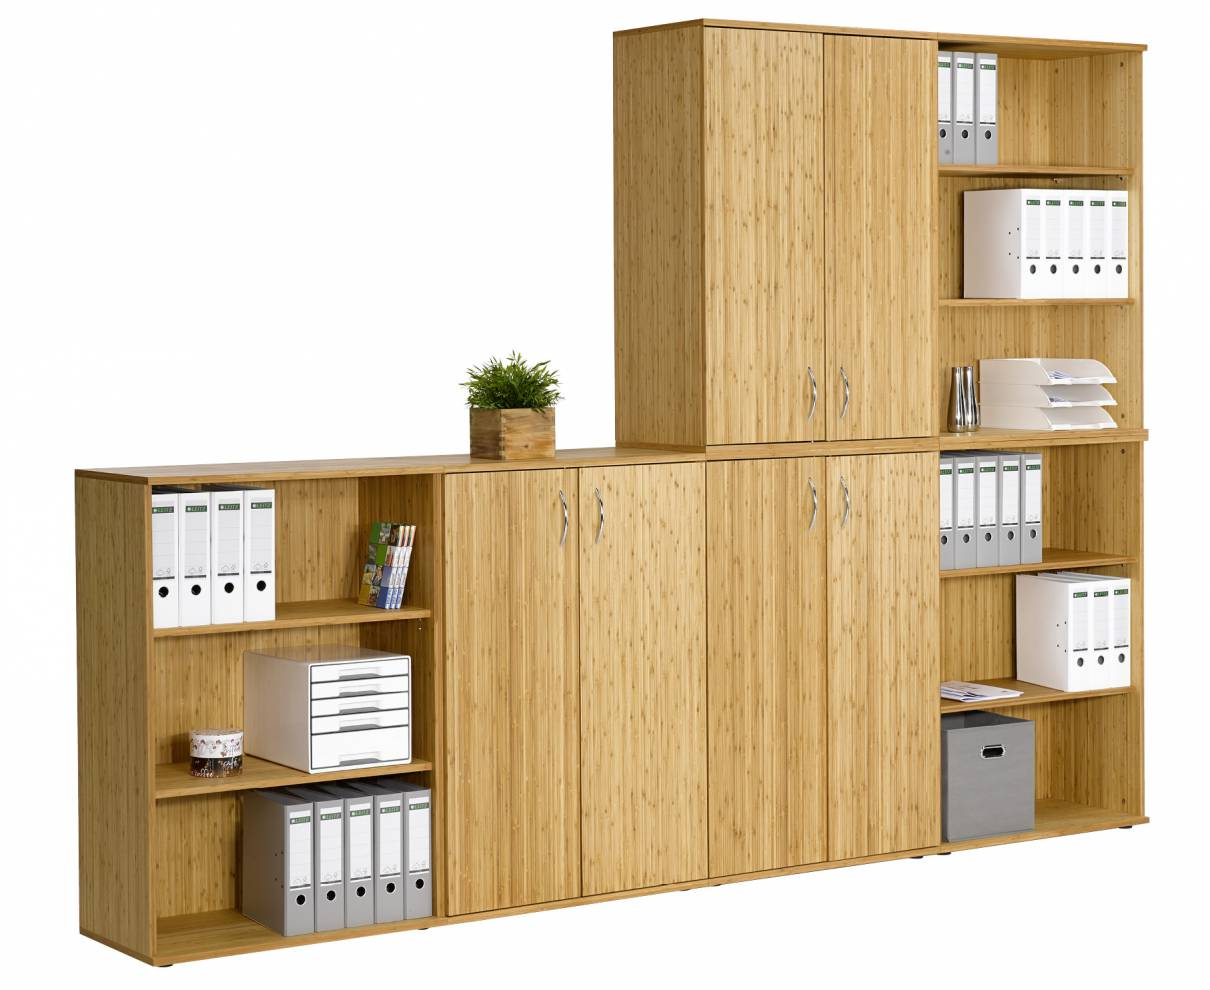 Bamboo solid wood stackable cabinets (Sitwell collection)